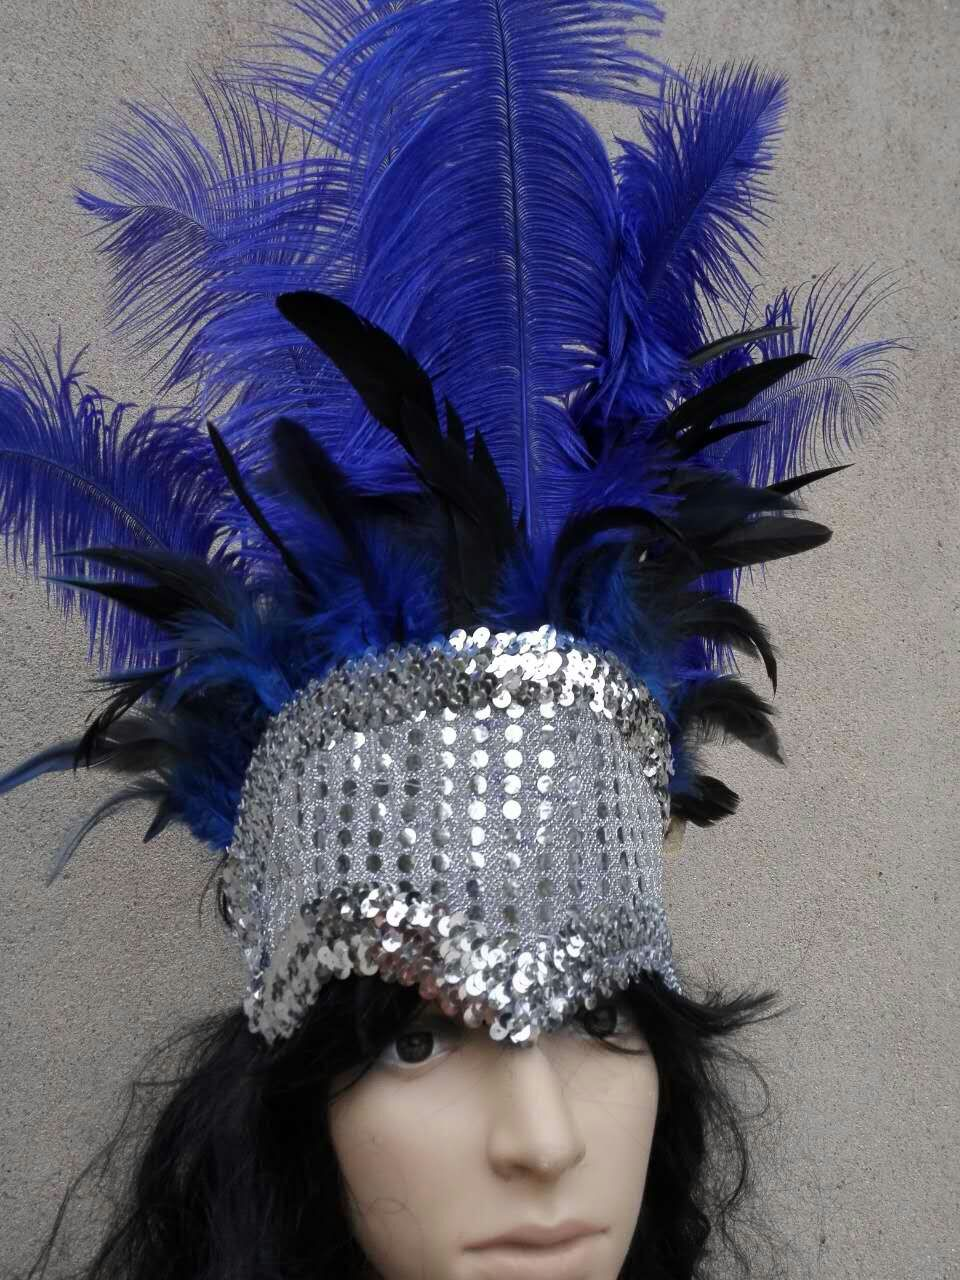 Red Ostrich Feathers /& Pheasant Feathers Sequins Open Face Headdress Show girl